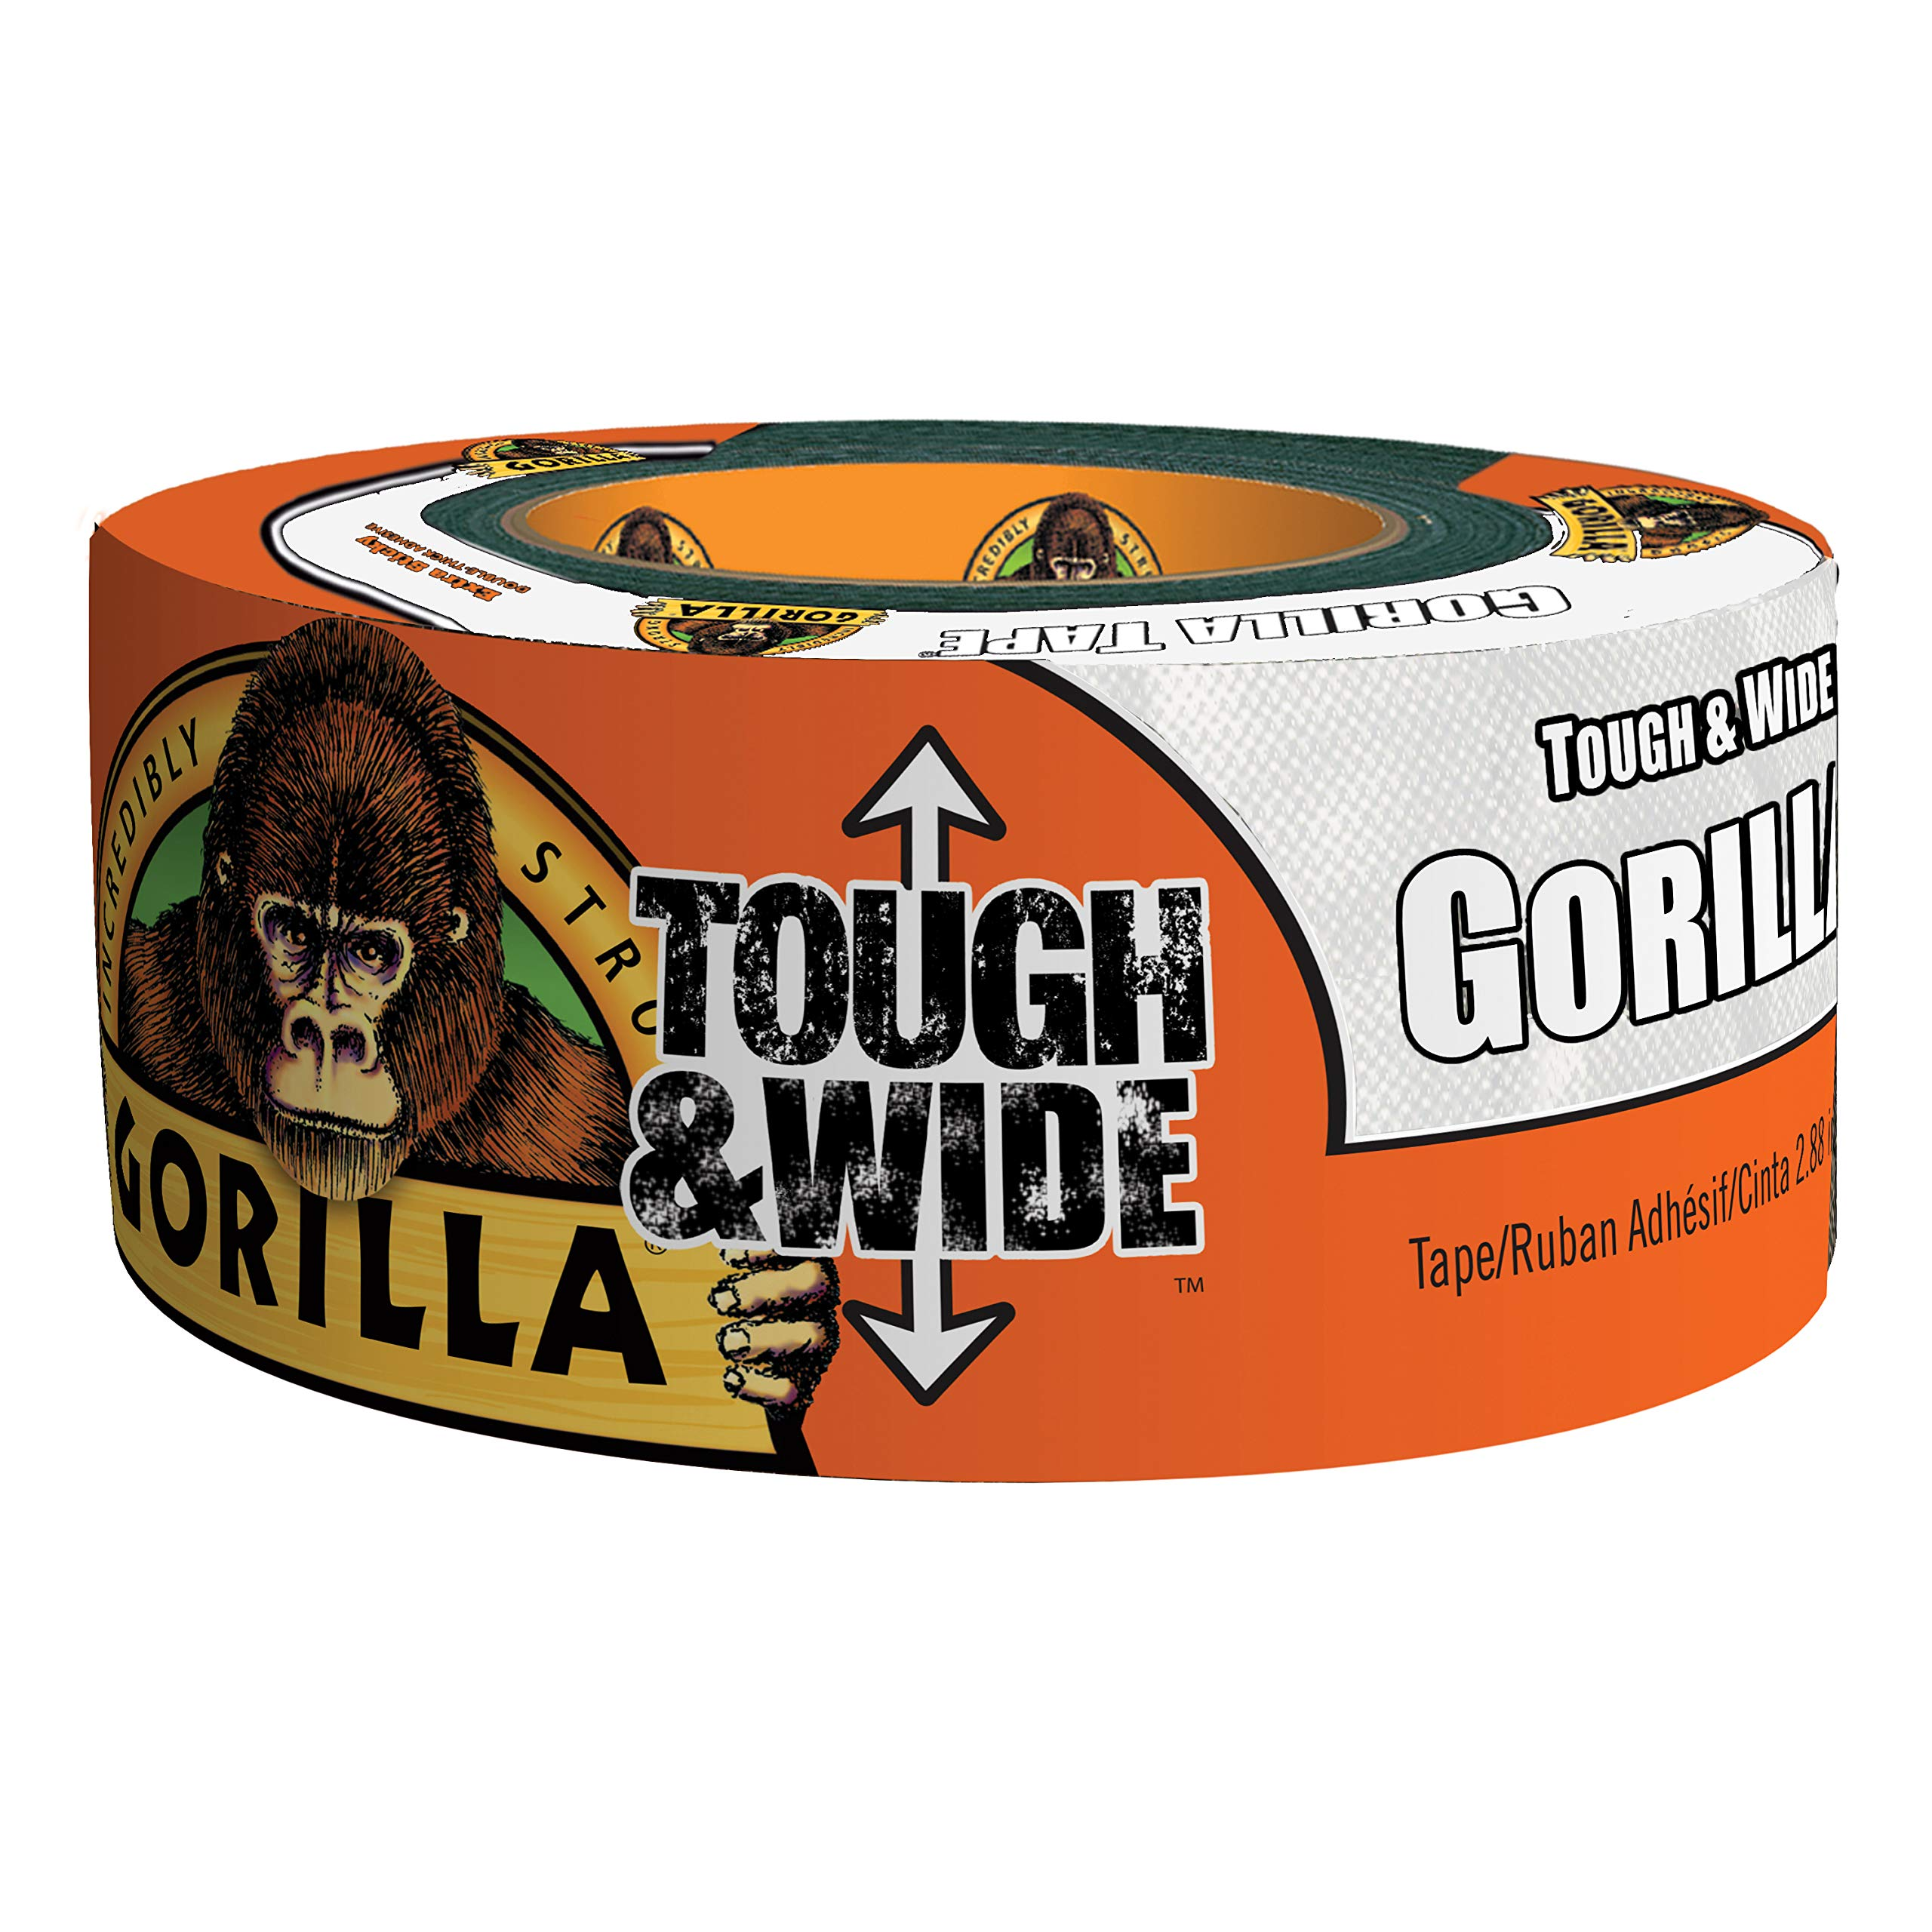 Gorilla 6025302 White Tough & Wide Duct Tape, 1 - Pack,